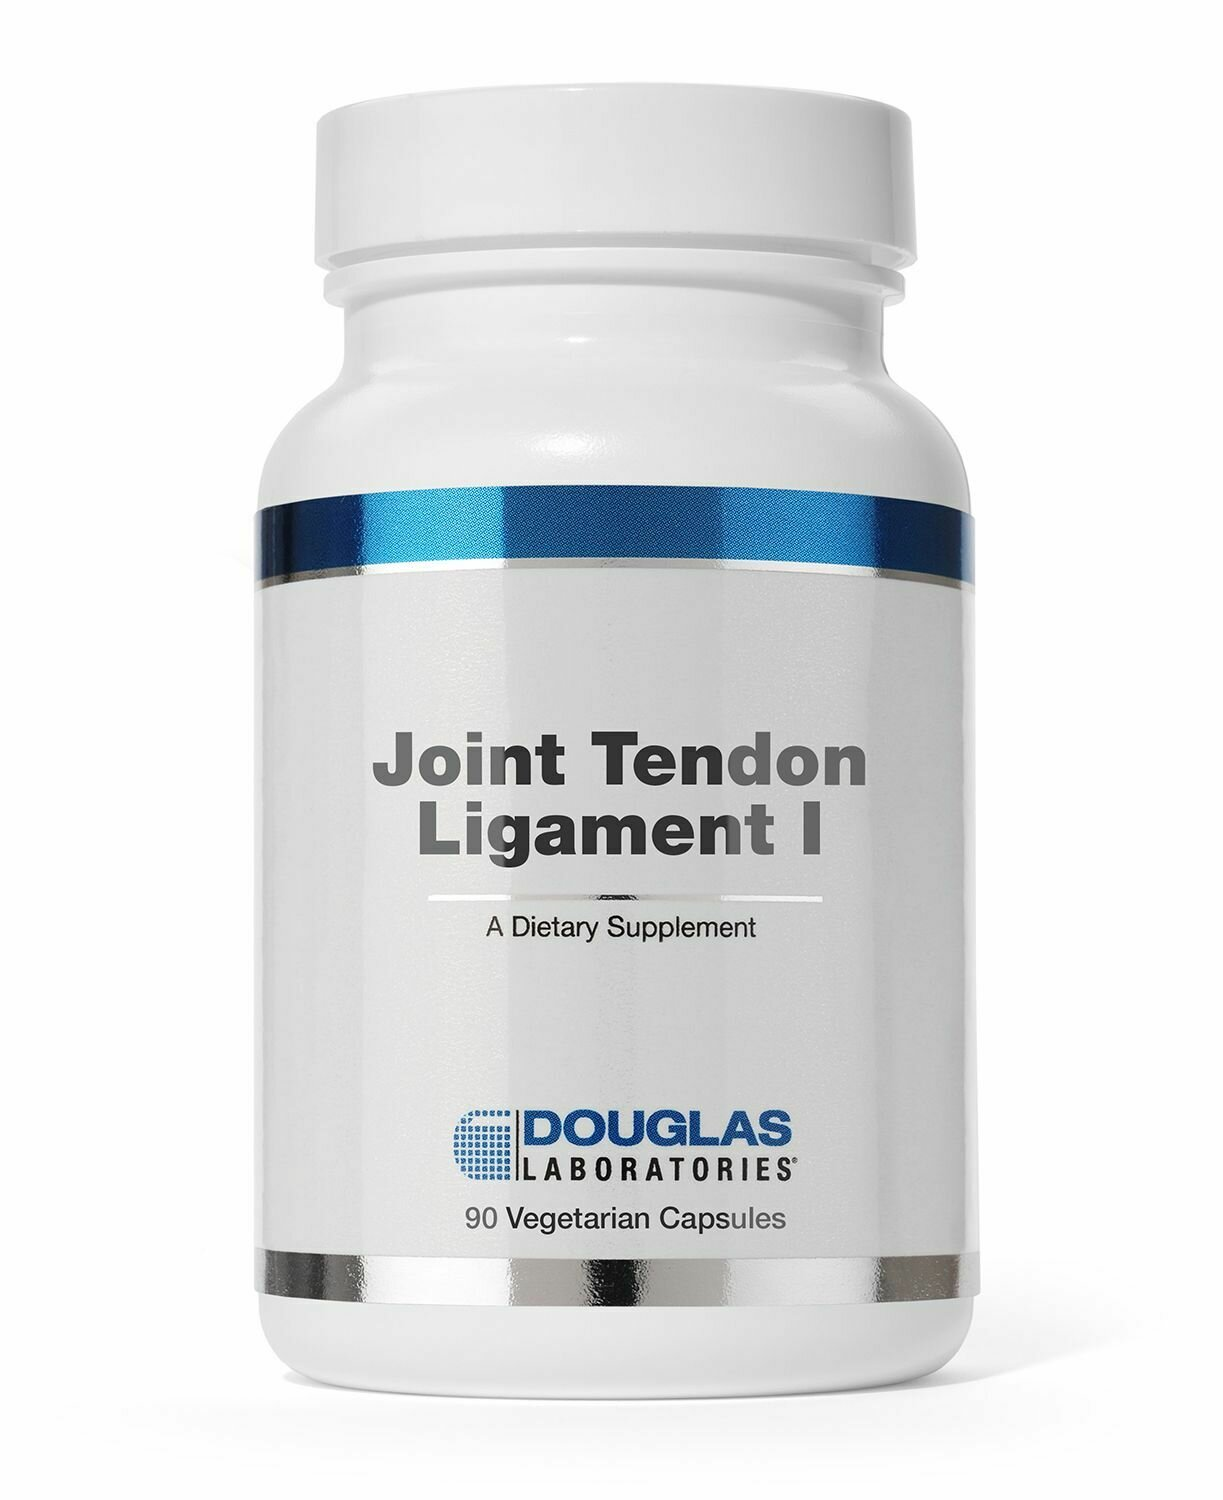 Joint, Tendon, Ligament I